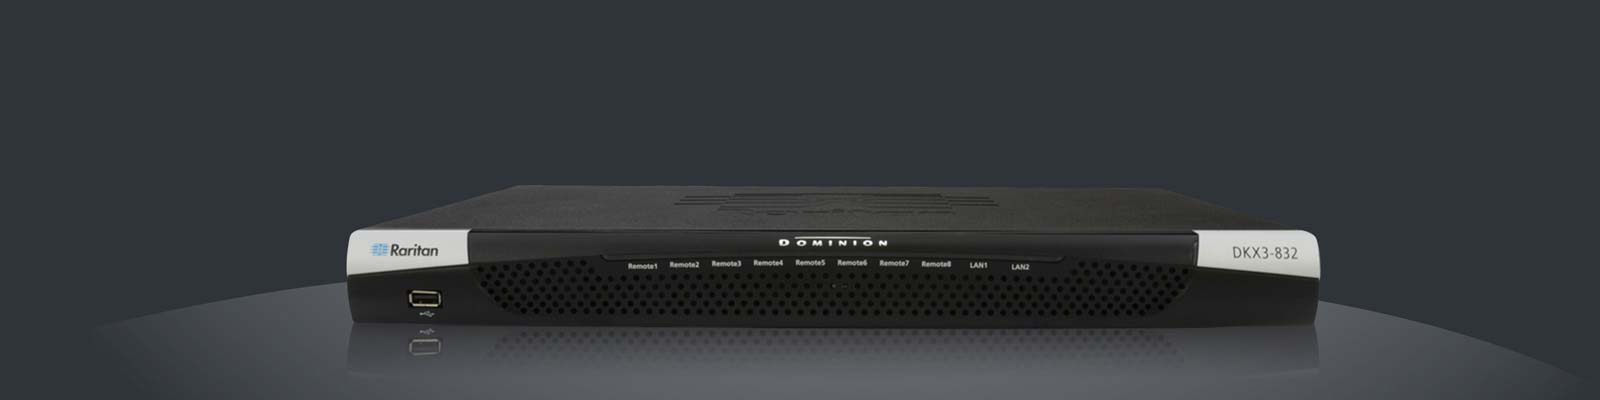 Raritan Dominion DKX3 CAT5 KVM Over IP Switch